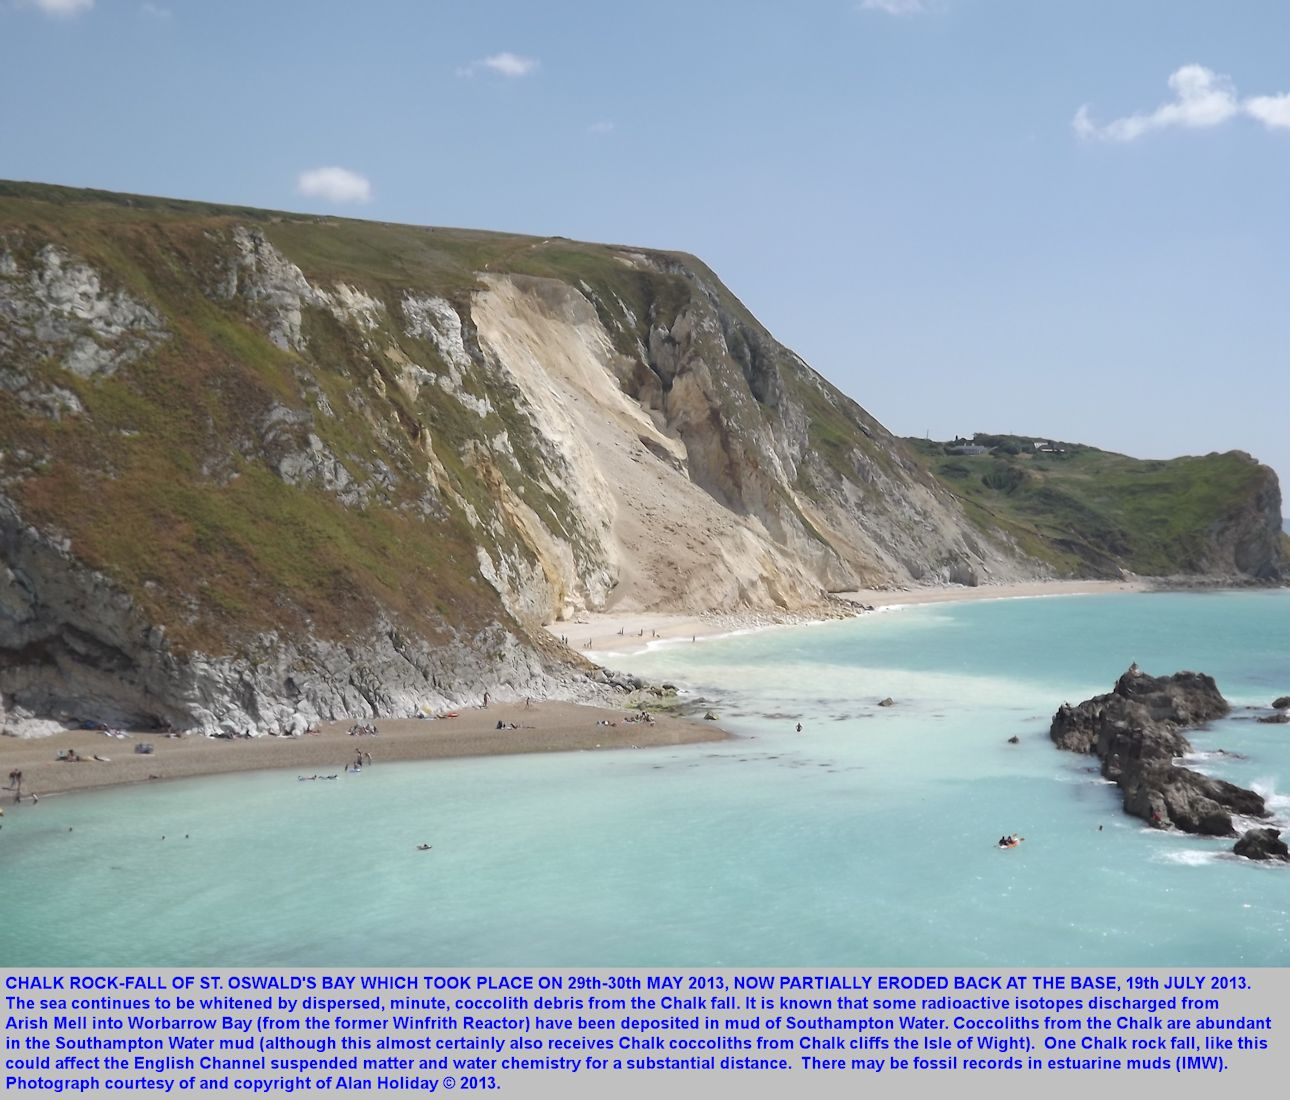 The St. Oswald's Bay Chalk rockfall seen later, on 19th July 2013, west of Lulworth Cove, Dorset